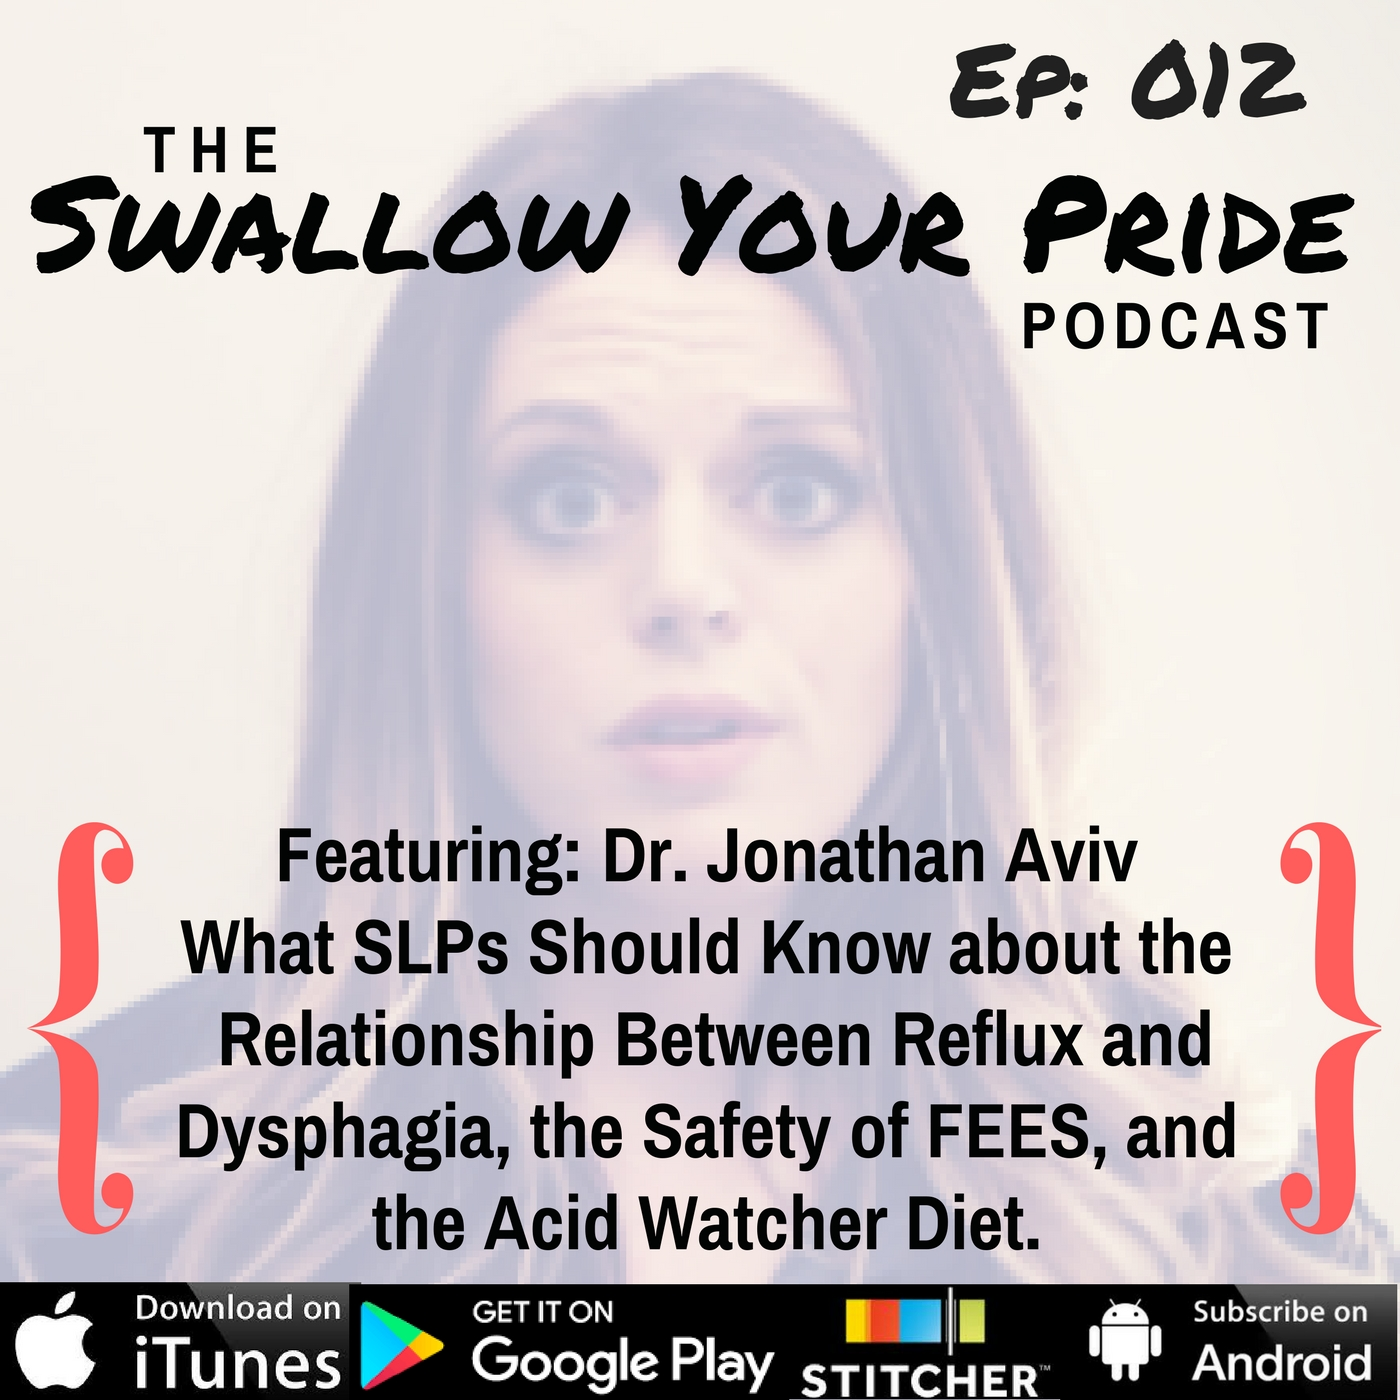 012 – Dr. Jonathan Aviv: What SLPs Should Know about the Relationship Between Reflux and Dysphagia, the Safety of FEES, and the Acid Watcher Diet.